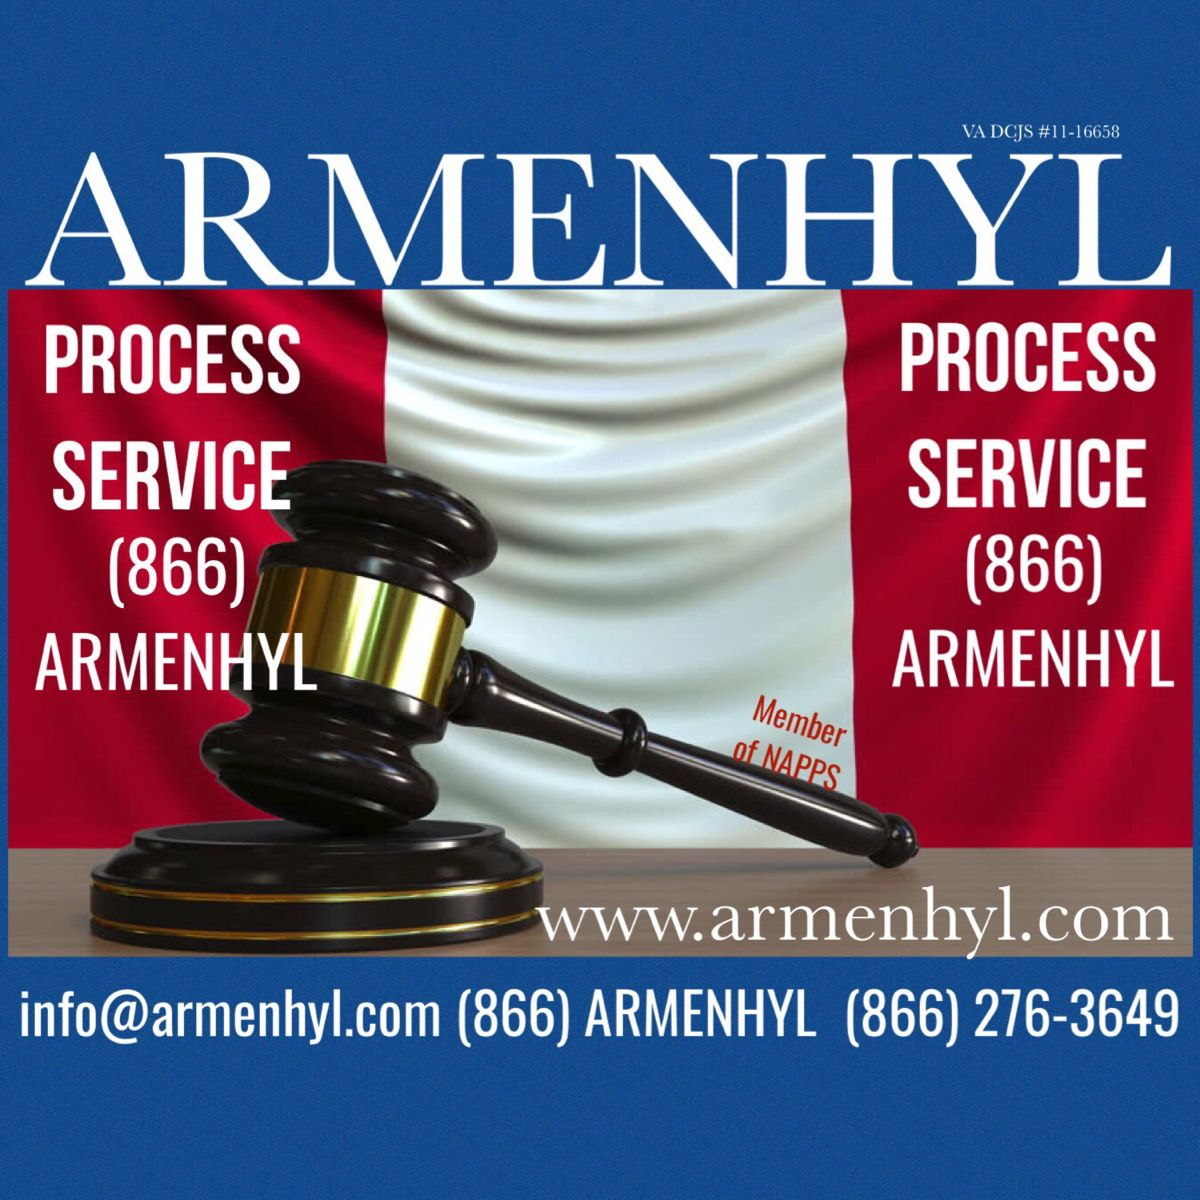 Armenhyl nationwide process service 866 armenhyl 866